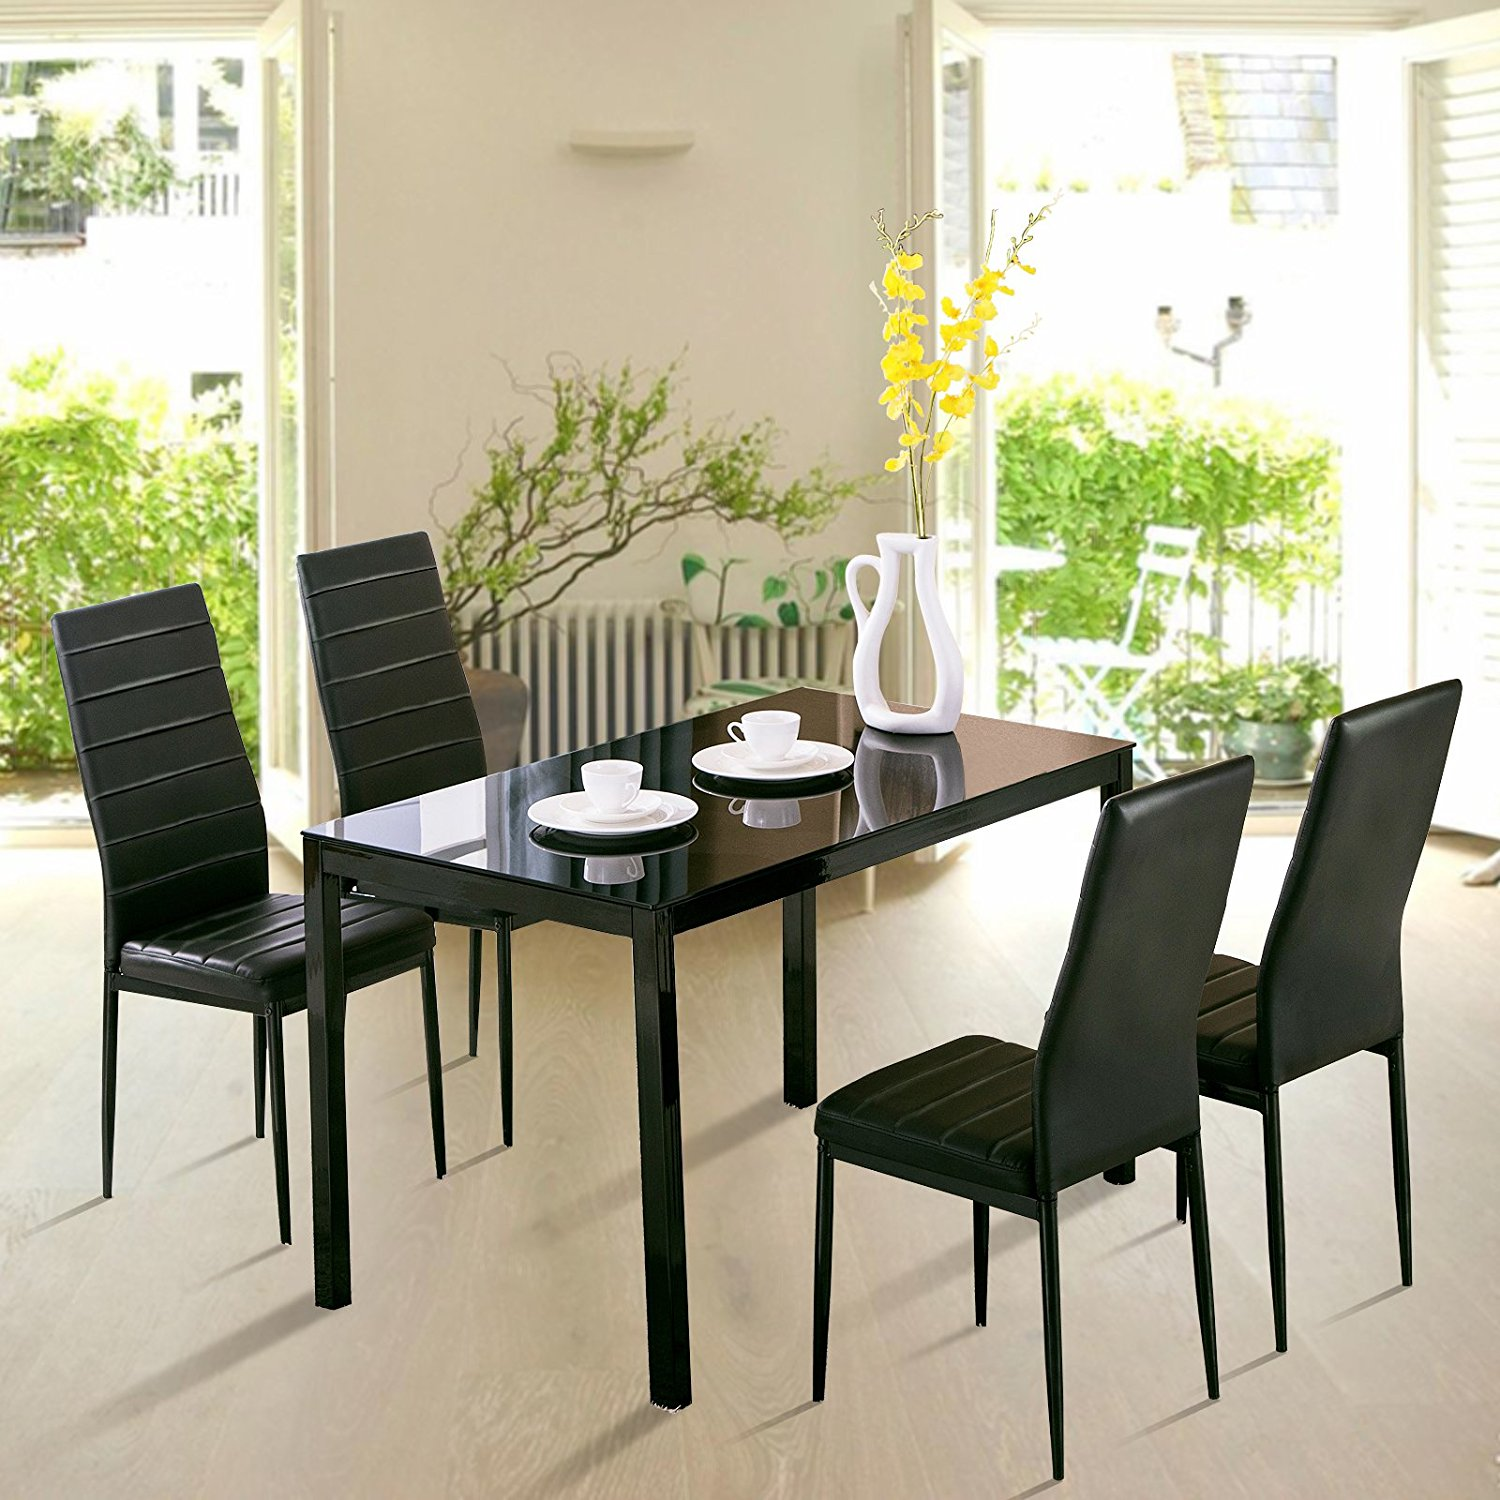 Uenjoy 5 Piece Dining Table Set 4 Chairs Glass Metal Kitchen Room Breakfast